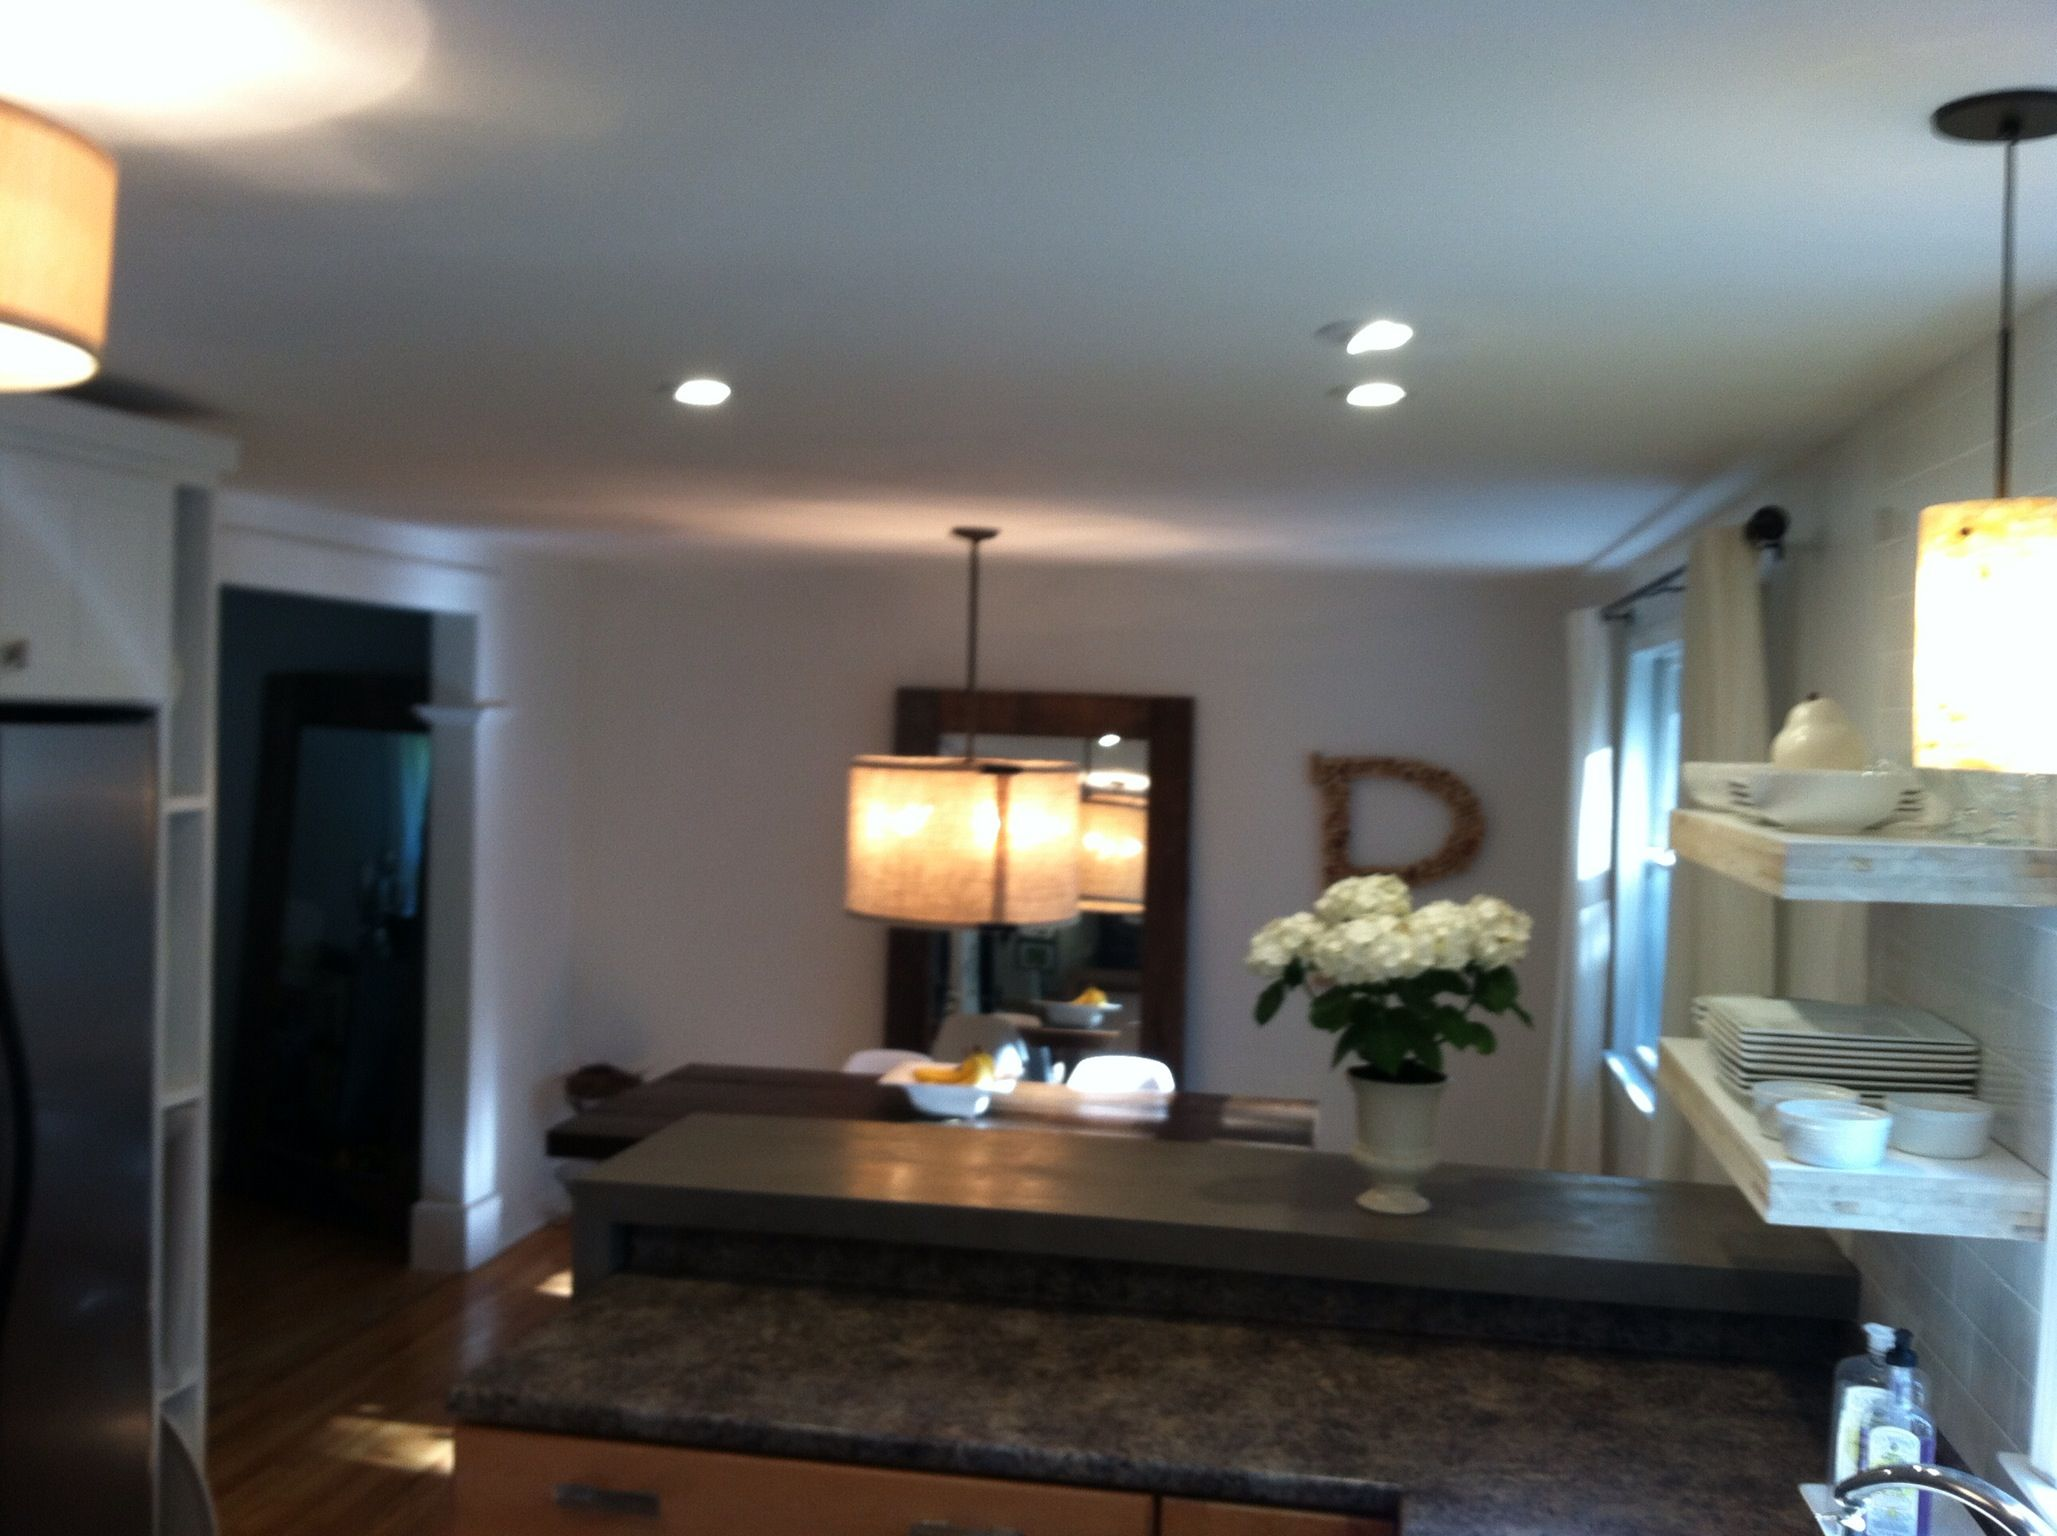 1 Of 5 New Parson S Style Breakfast Bar Placed Where We